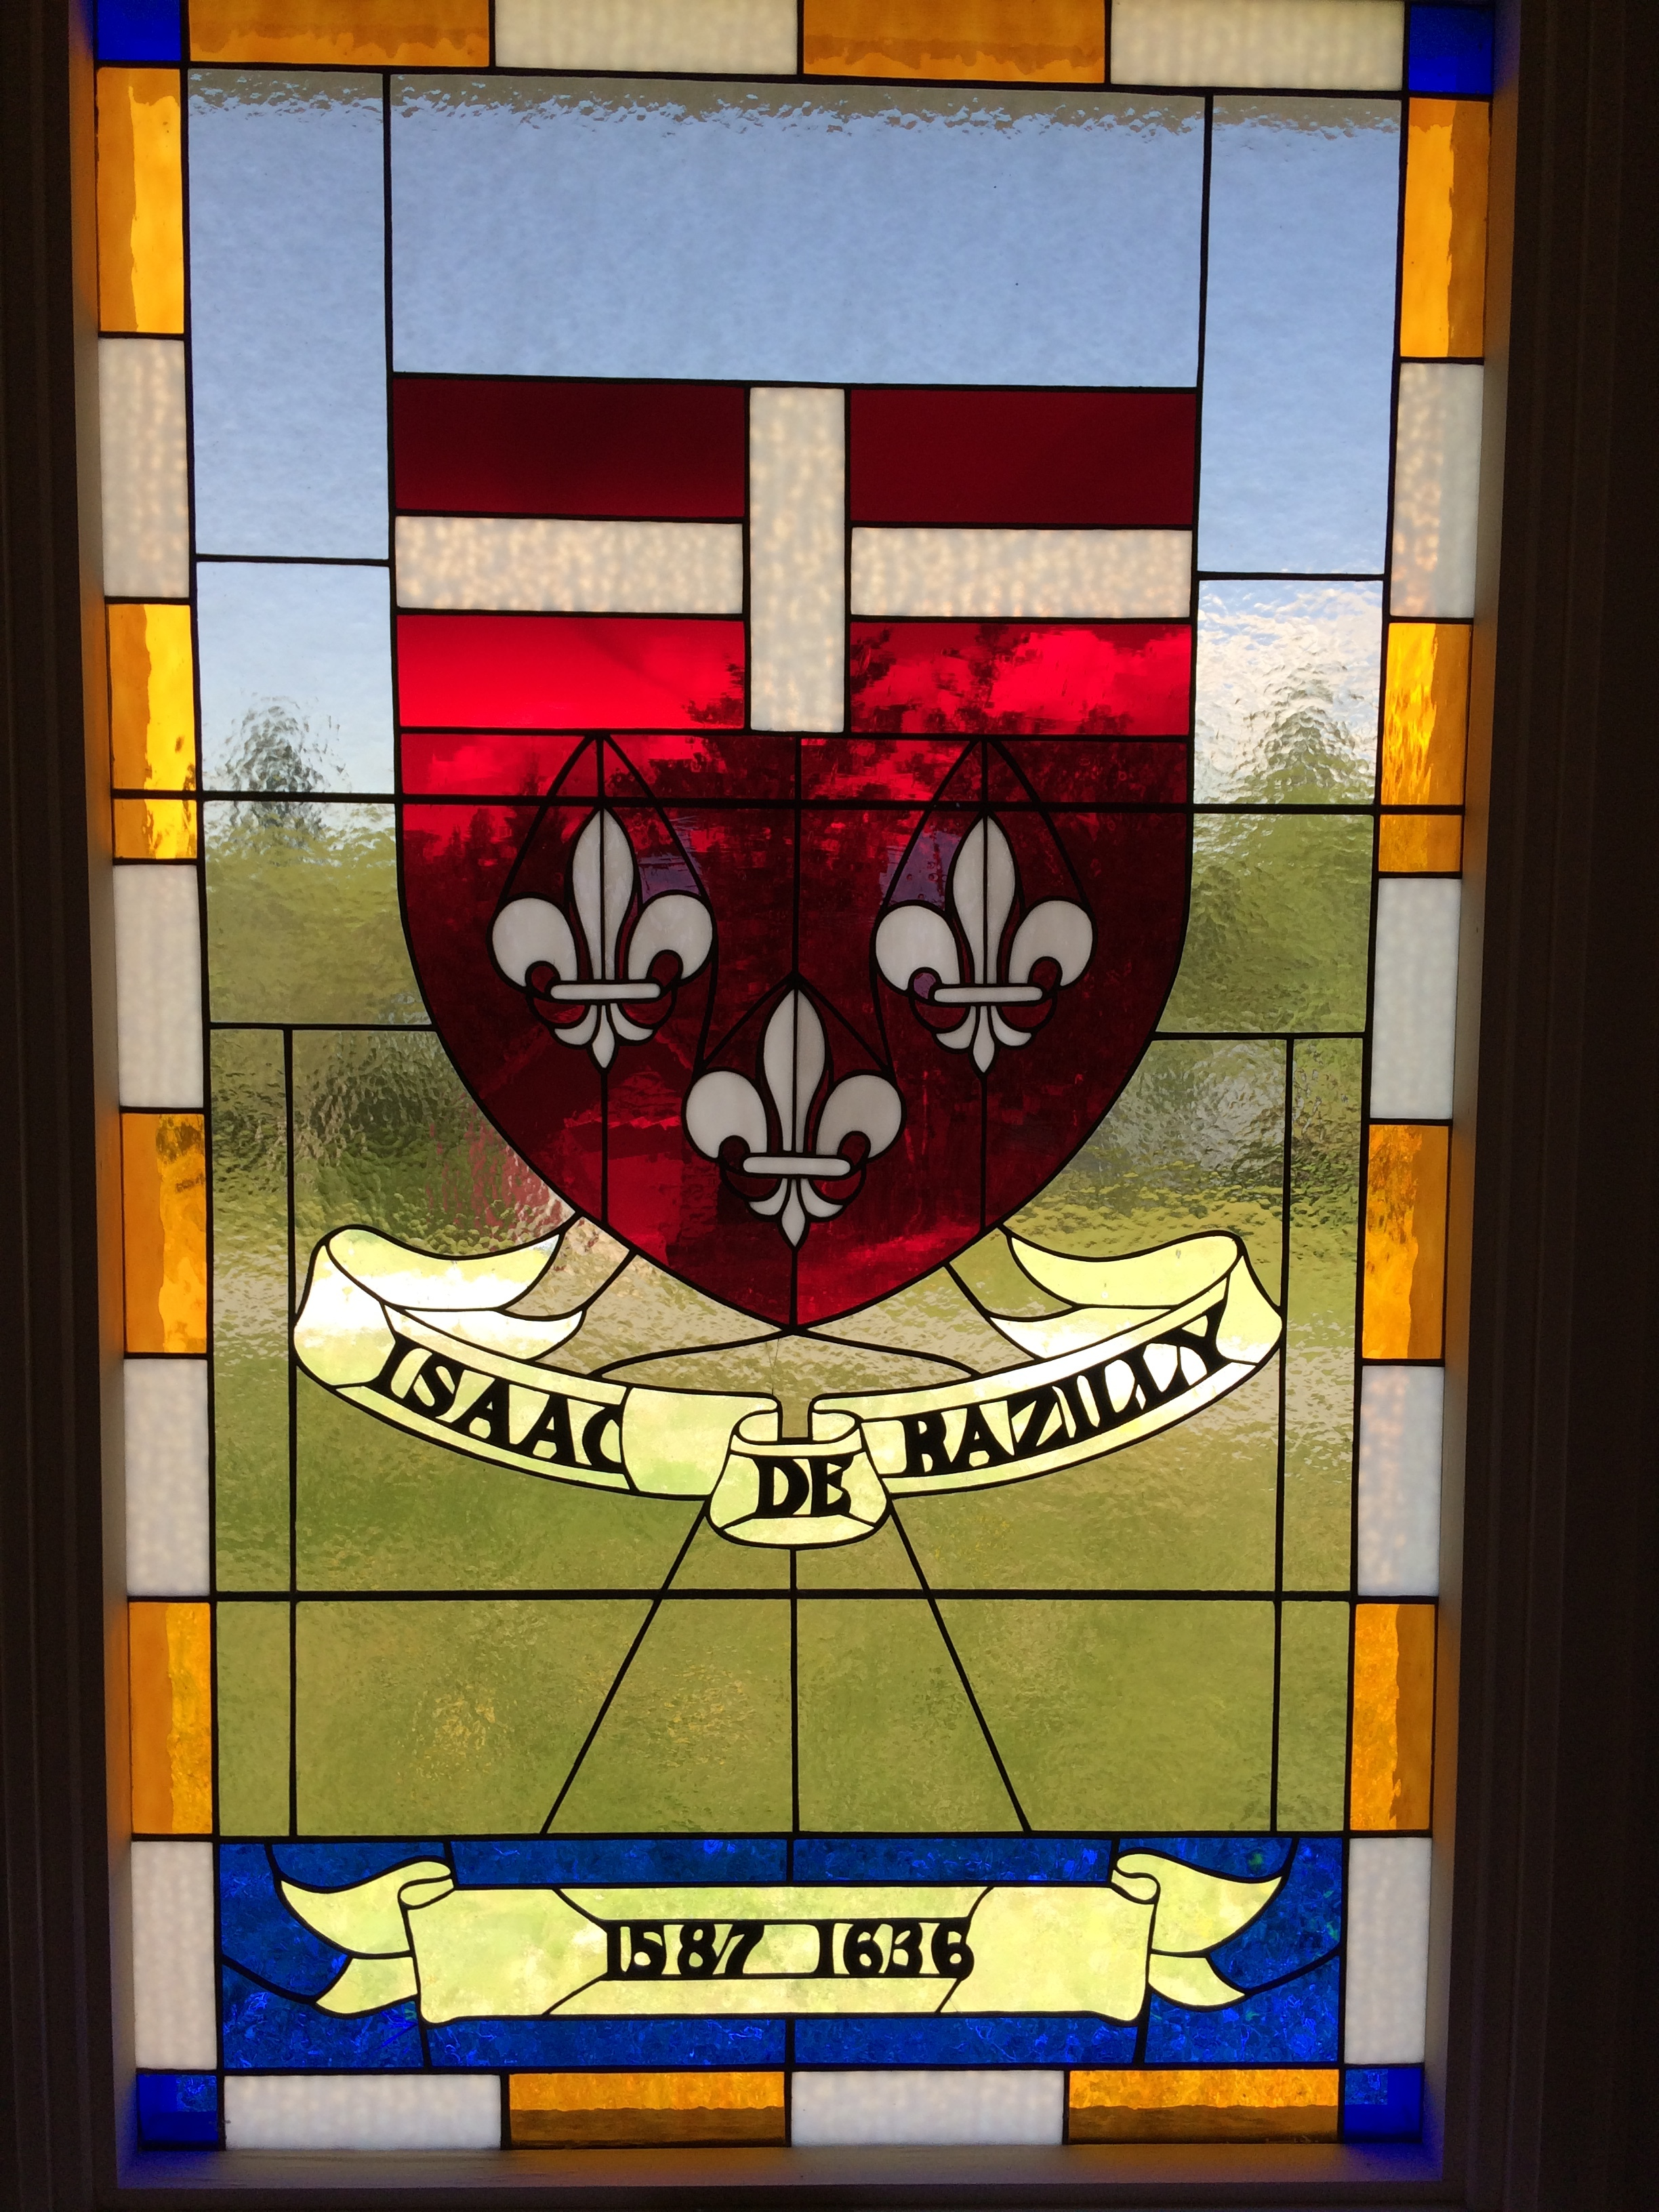 Sir Isaac de Razilly's family coat of arms done in stain glass is a stunning piece of art at the museum. Razilly landed here in 1632. Intent on establishing a permanent settlement in LaHave, Fort Saint Marie de Grace was named the first capital of New France and was a well established fort with as many as 40 canons and 100 settlers, before Razilly's untimely death.